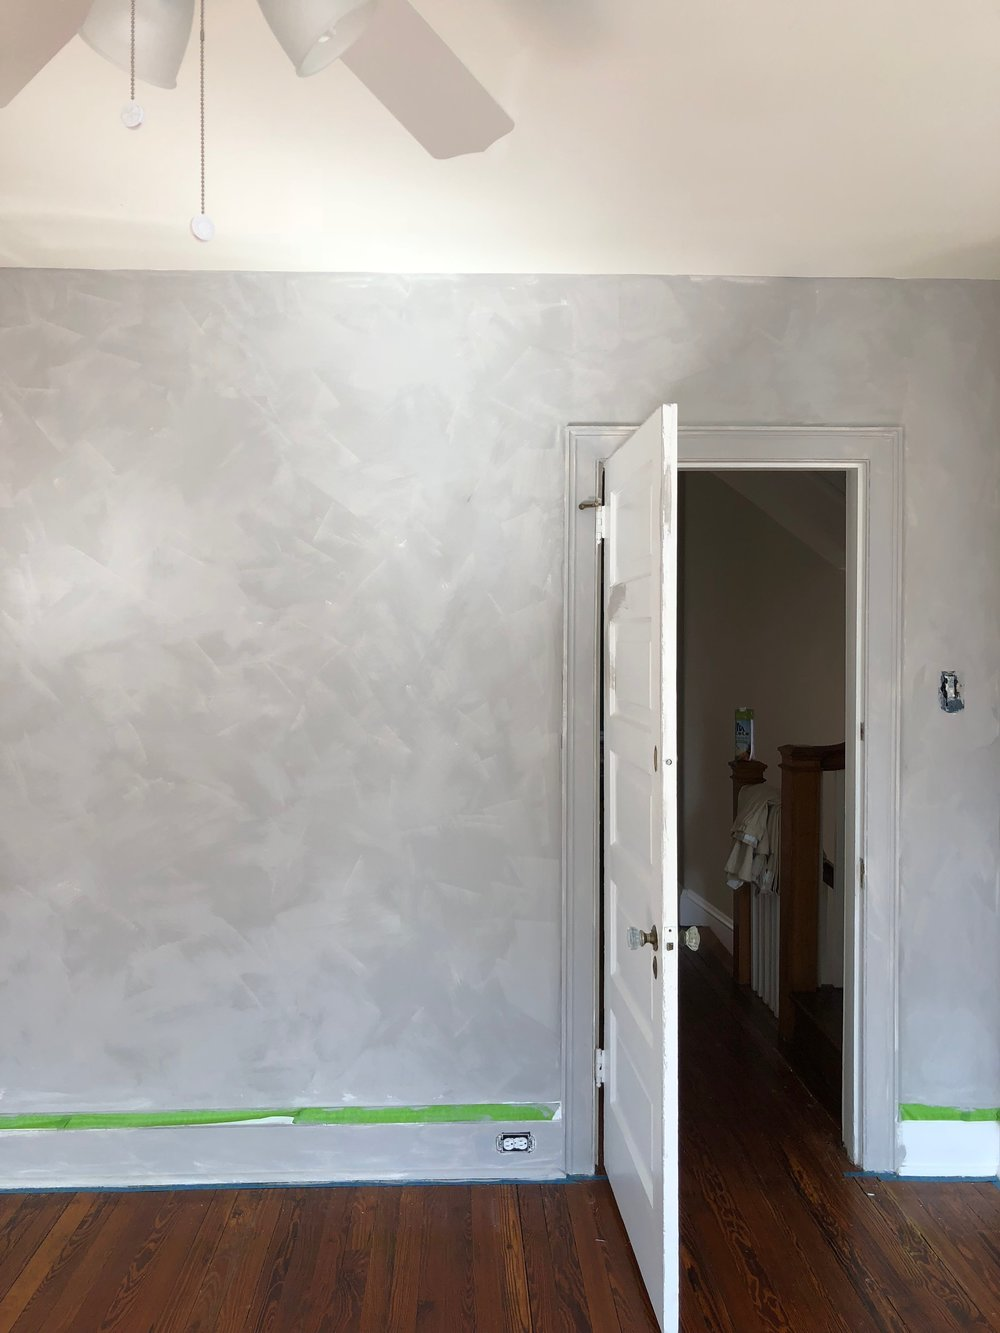 limewash 1st coat.JPG